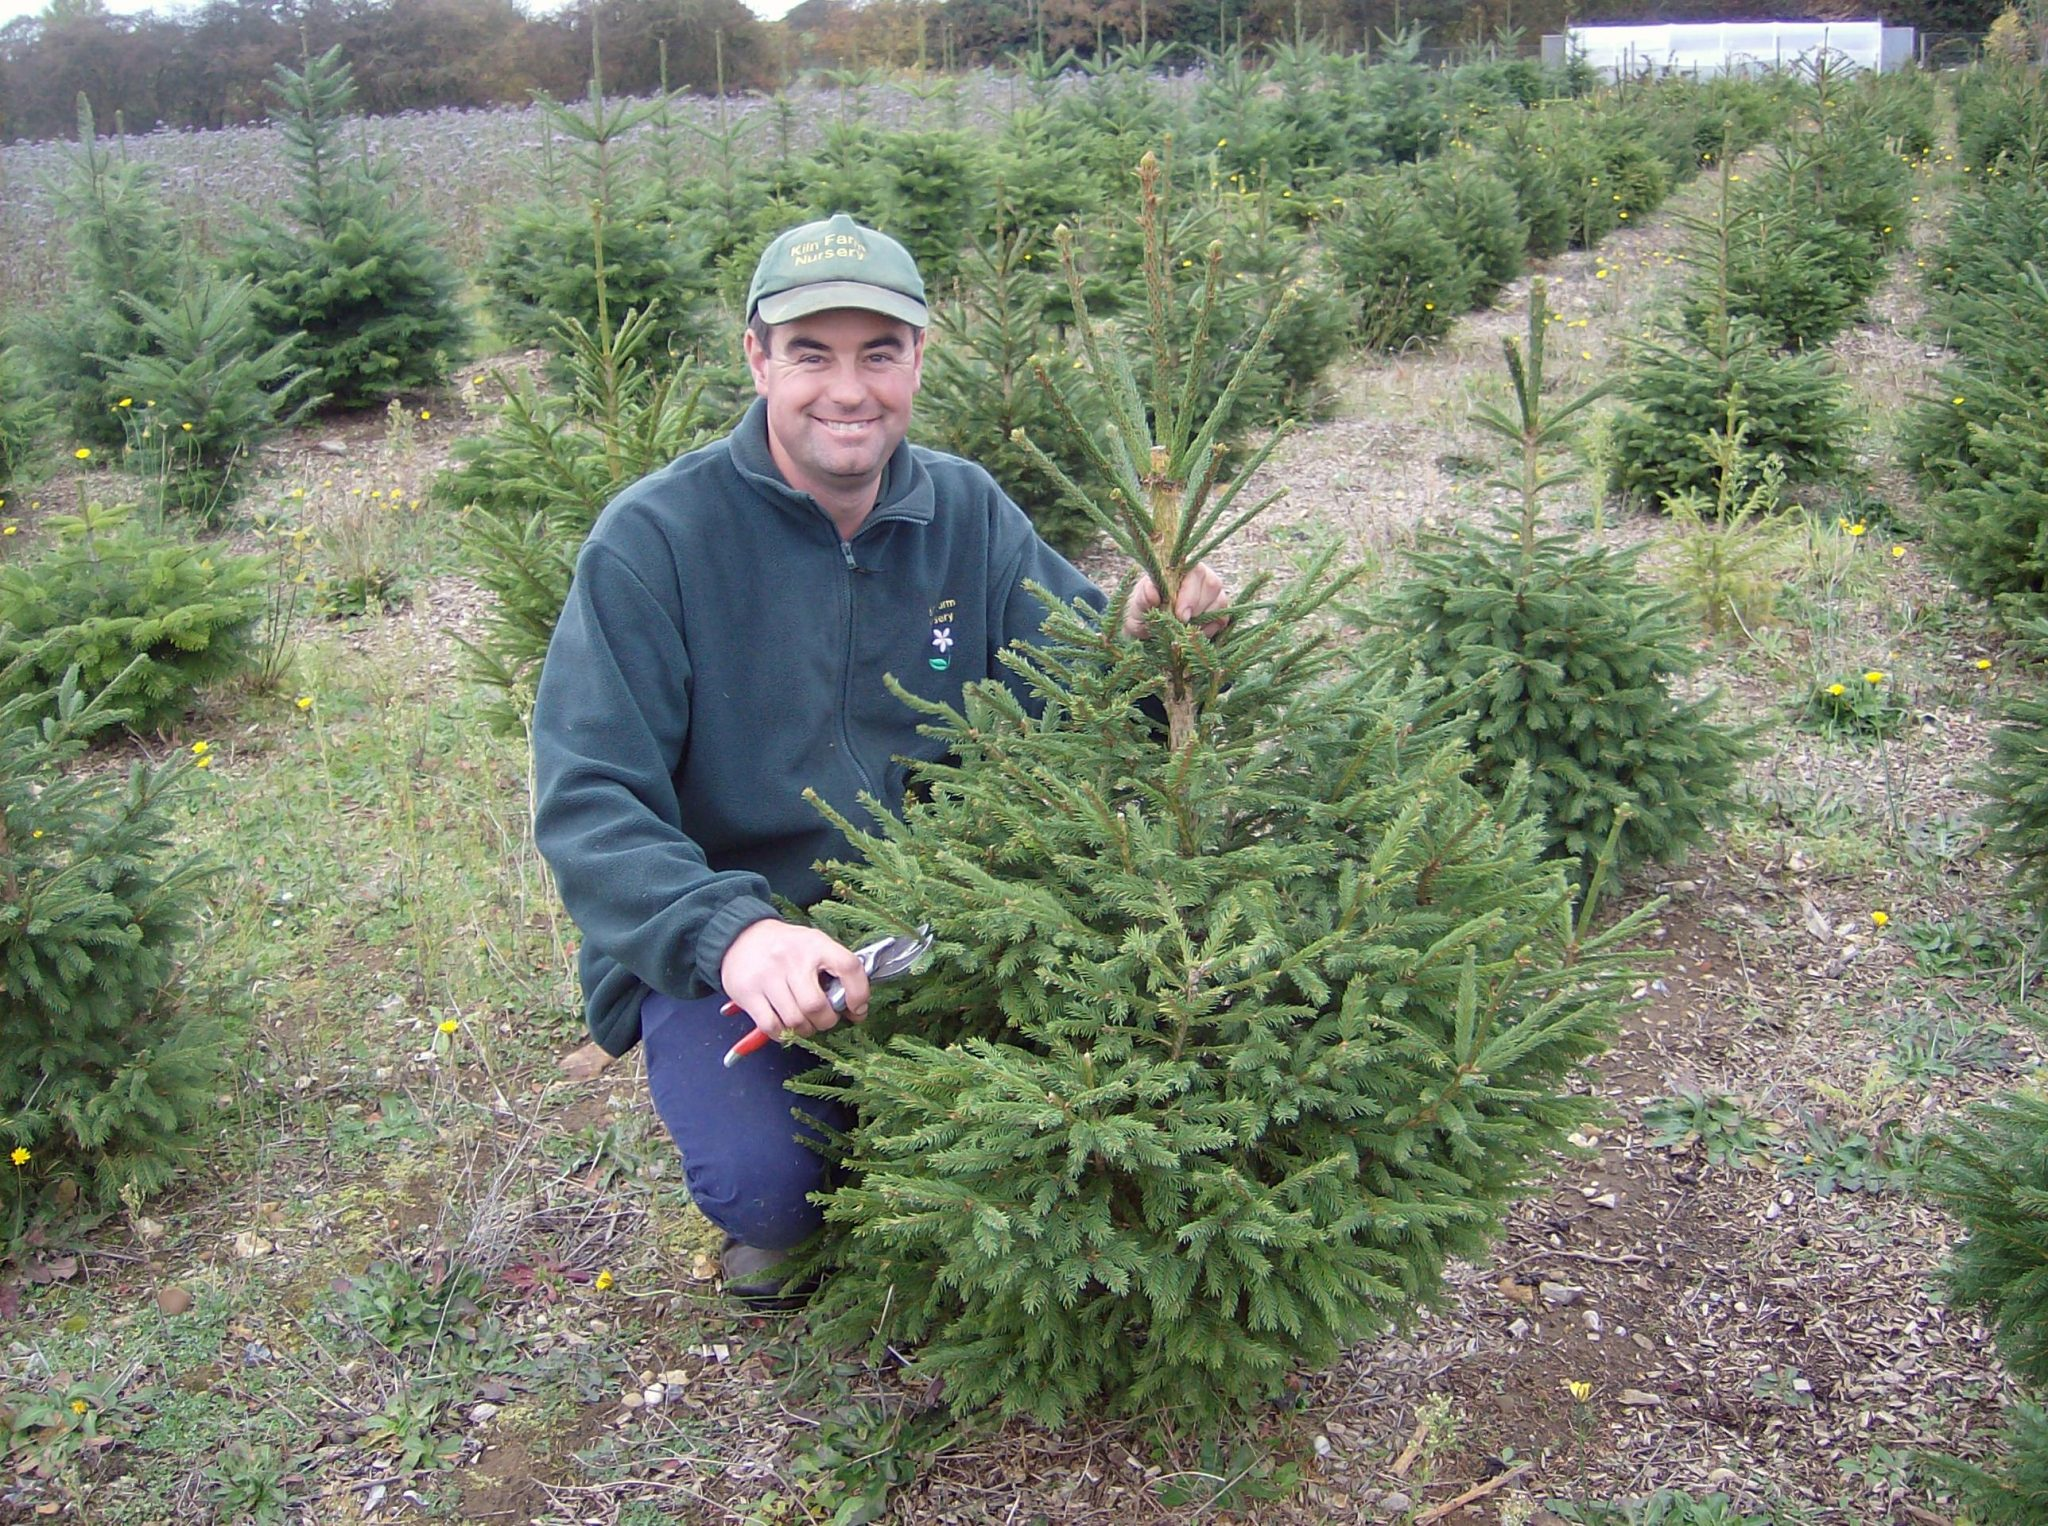 Paul with one of his baby trees!